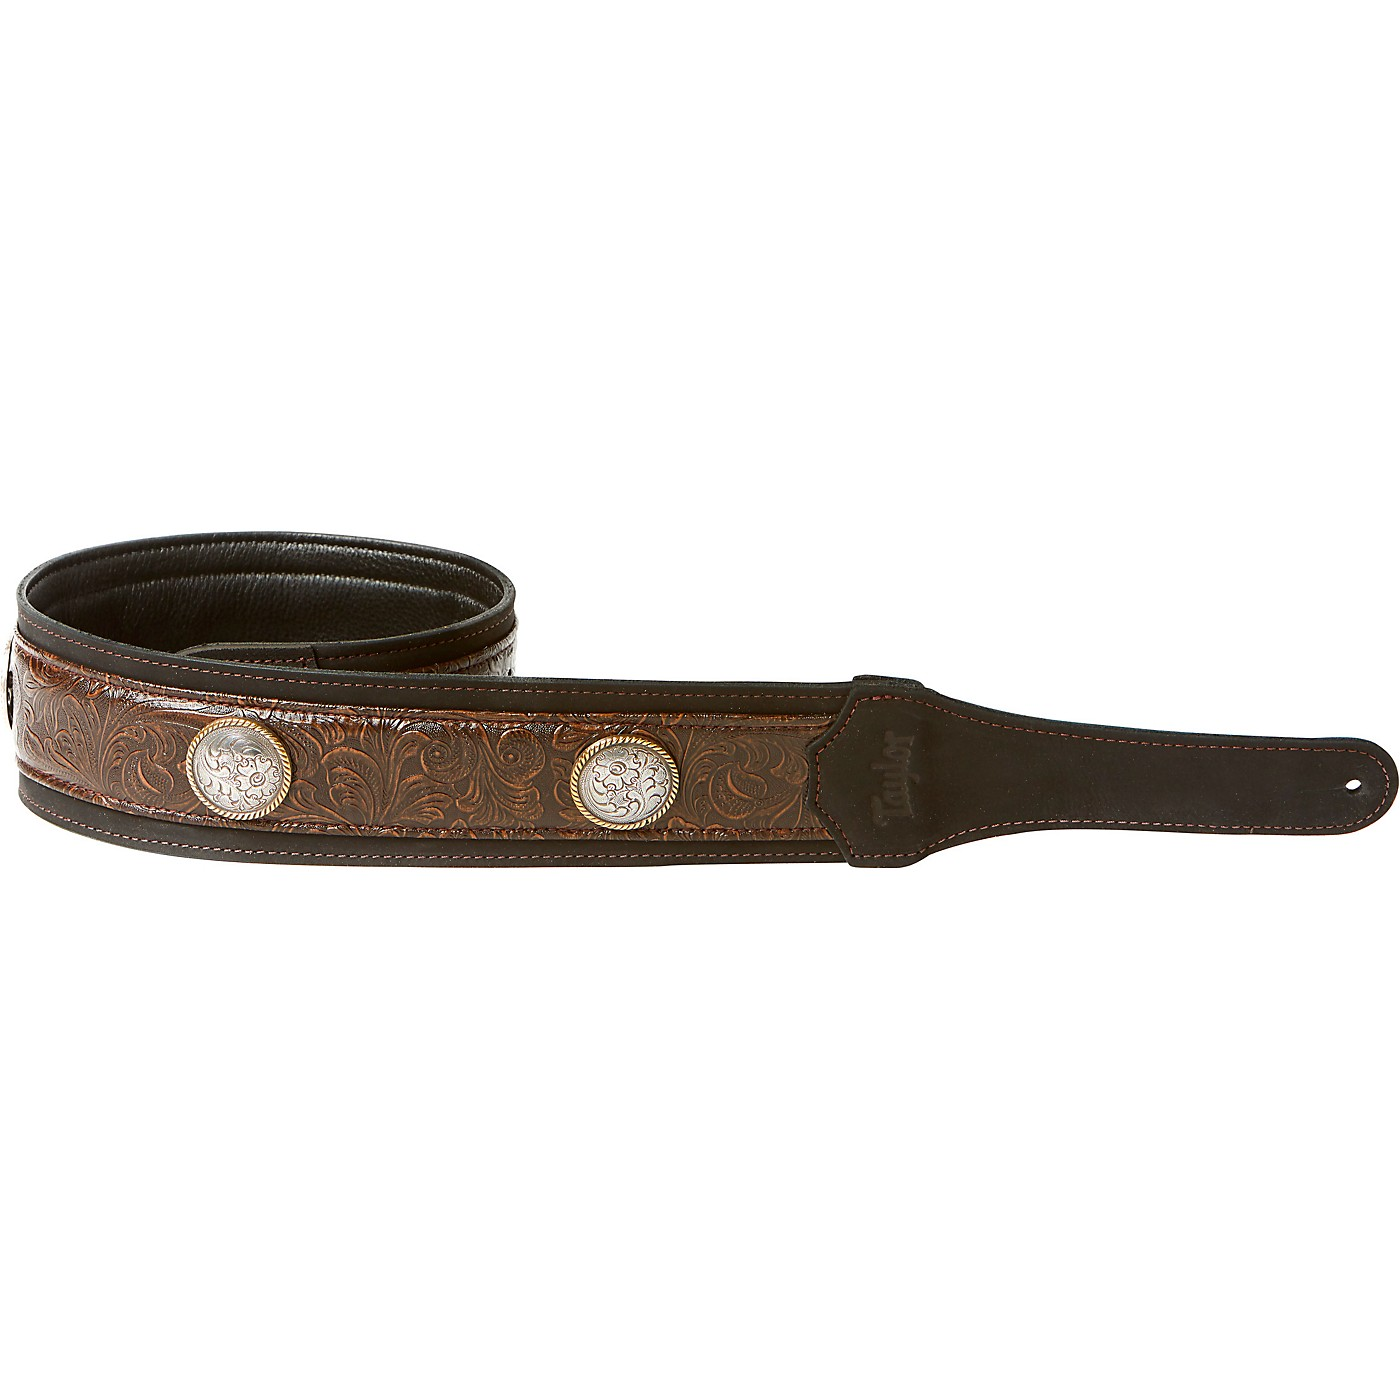 Taylor Grand Pacific Leather Strap, Nickel Conchos thumbnail